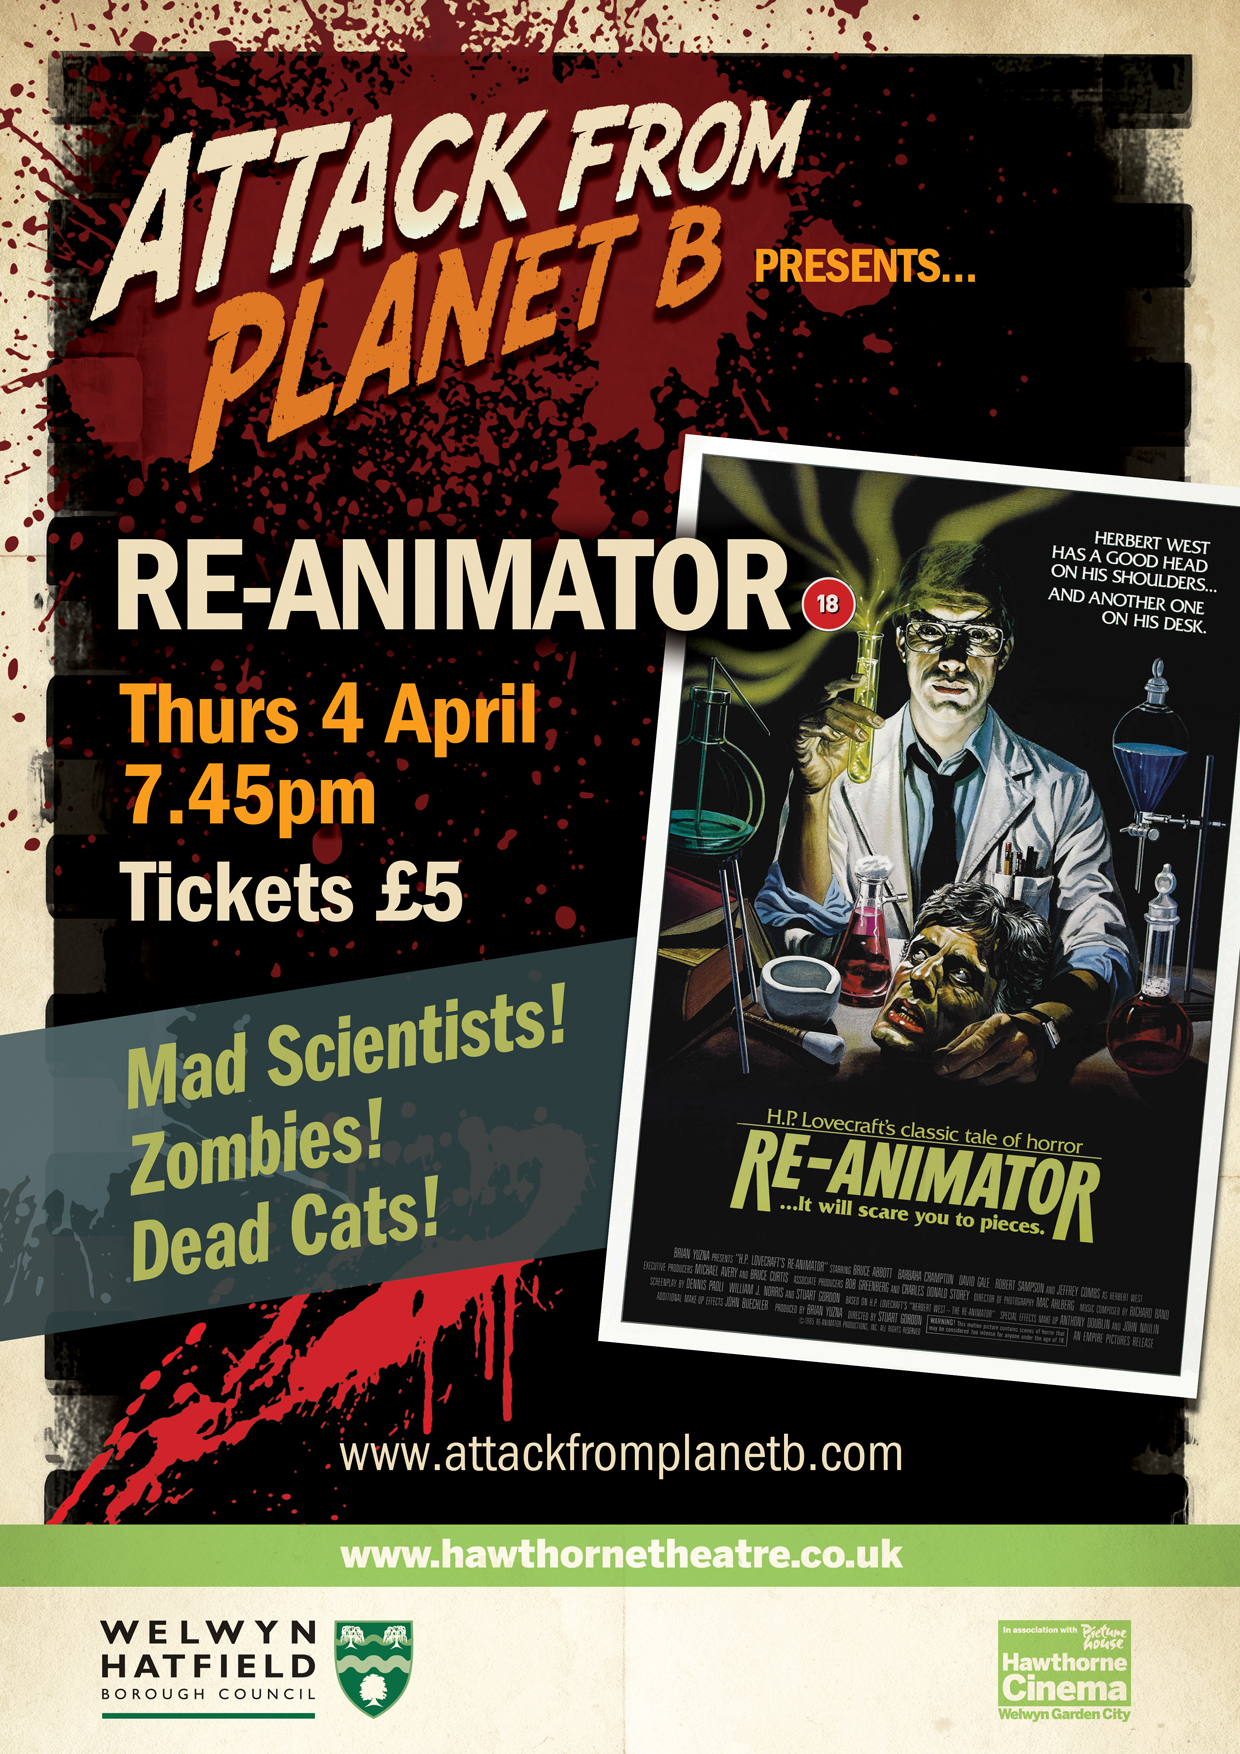 Attack From Planet B Presents ... Re-animator